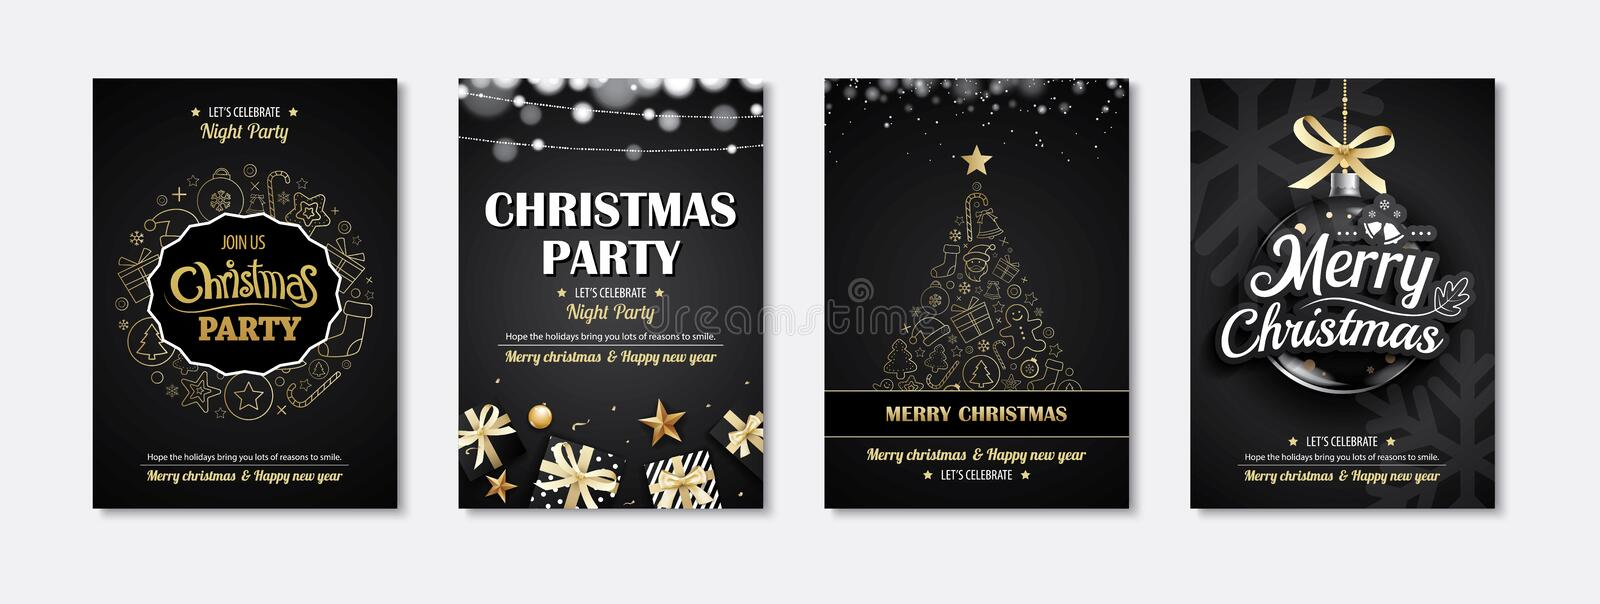 Merry christmas greeting card and party invitations on black royalty free illustration